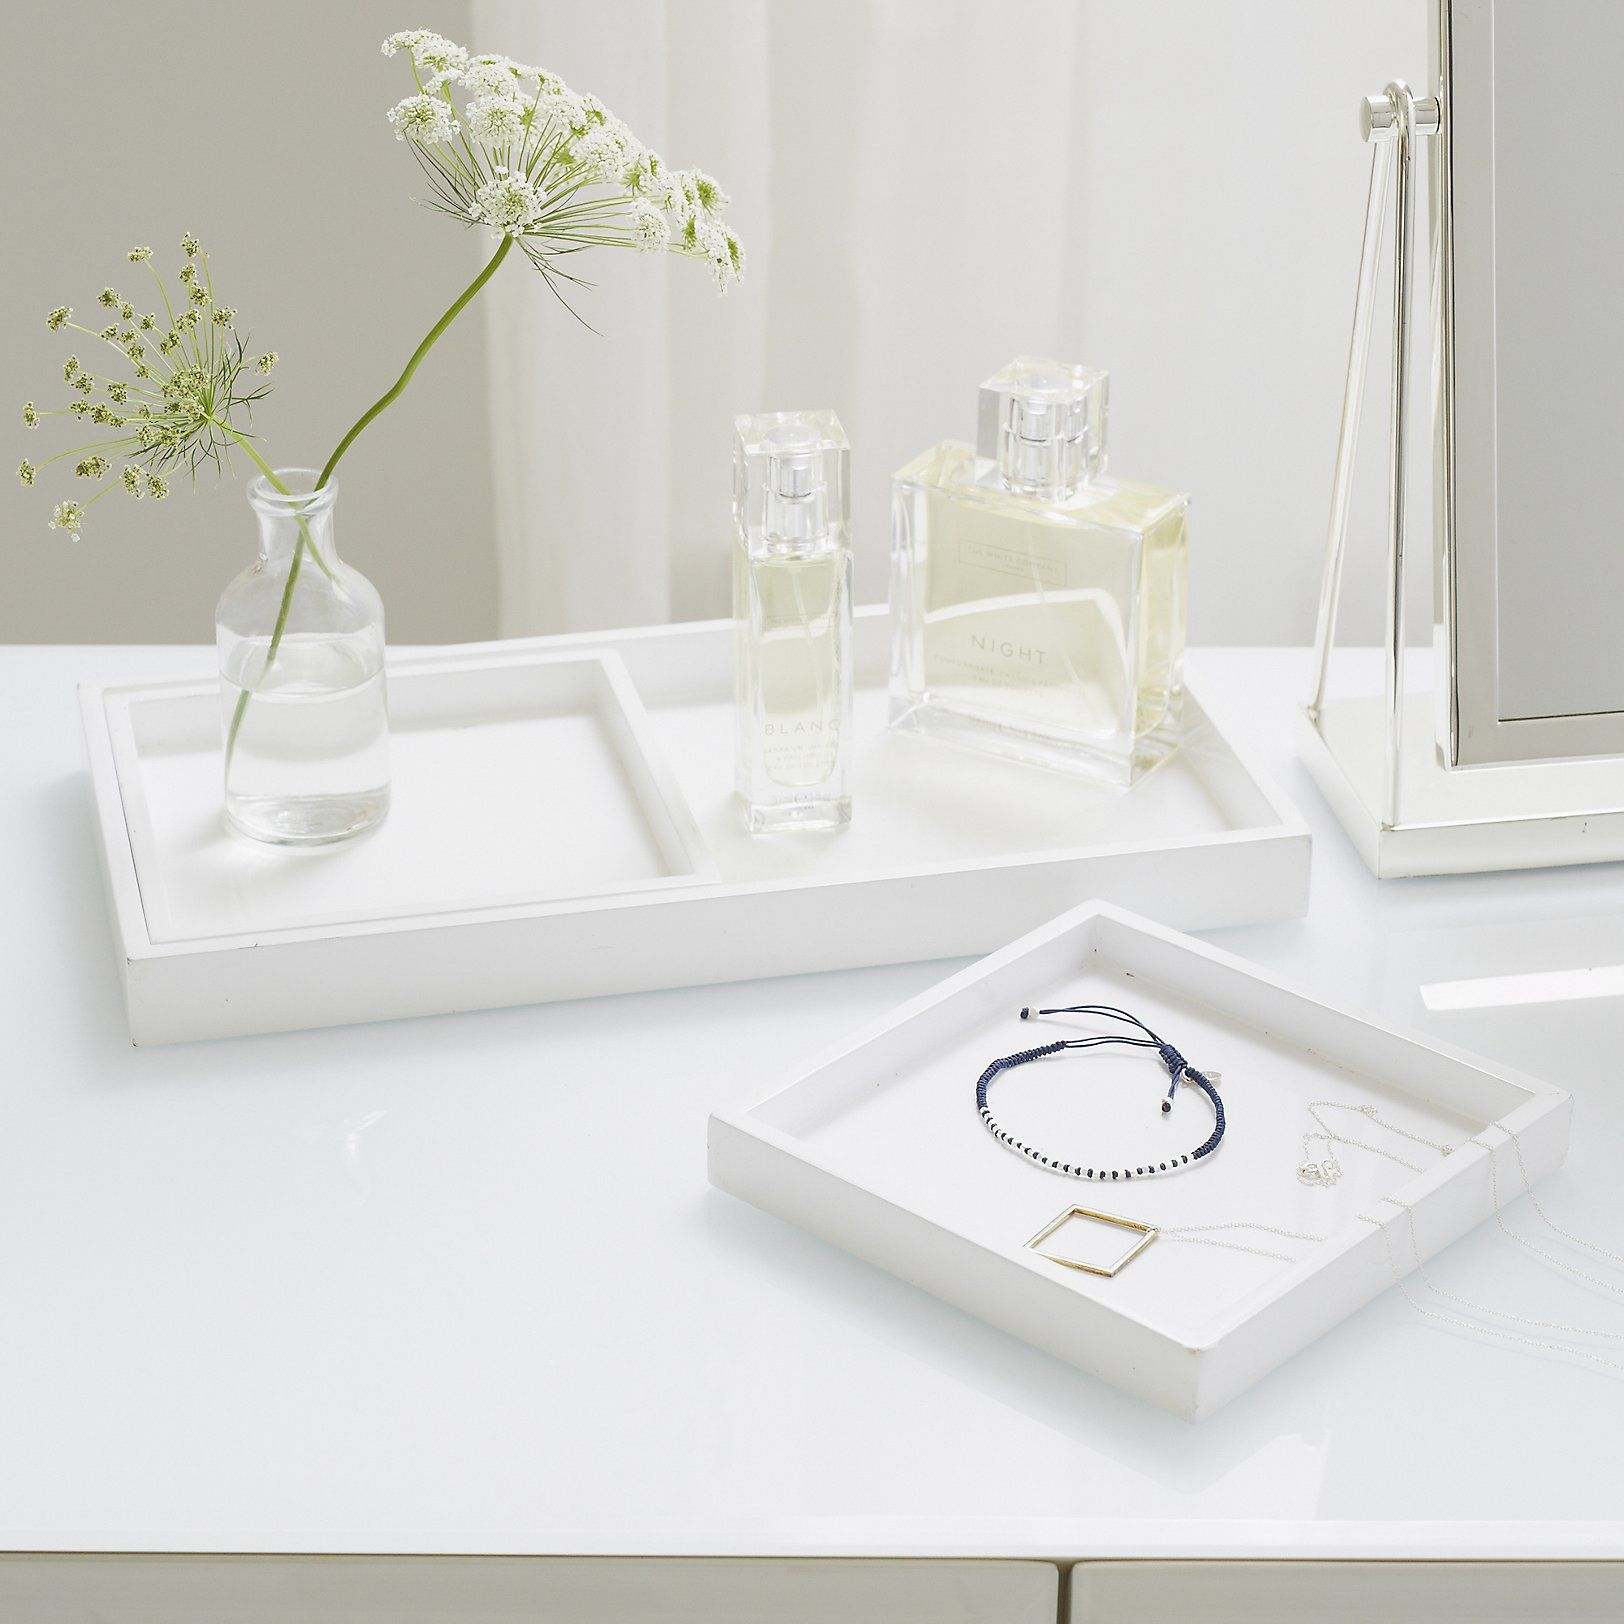 decorative product garden laurel metal today mirrored and kate home free white tray gold shipping overstock decor glass